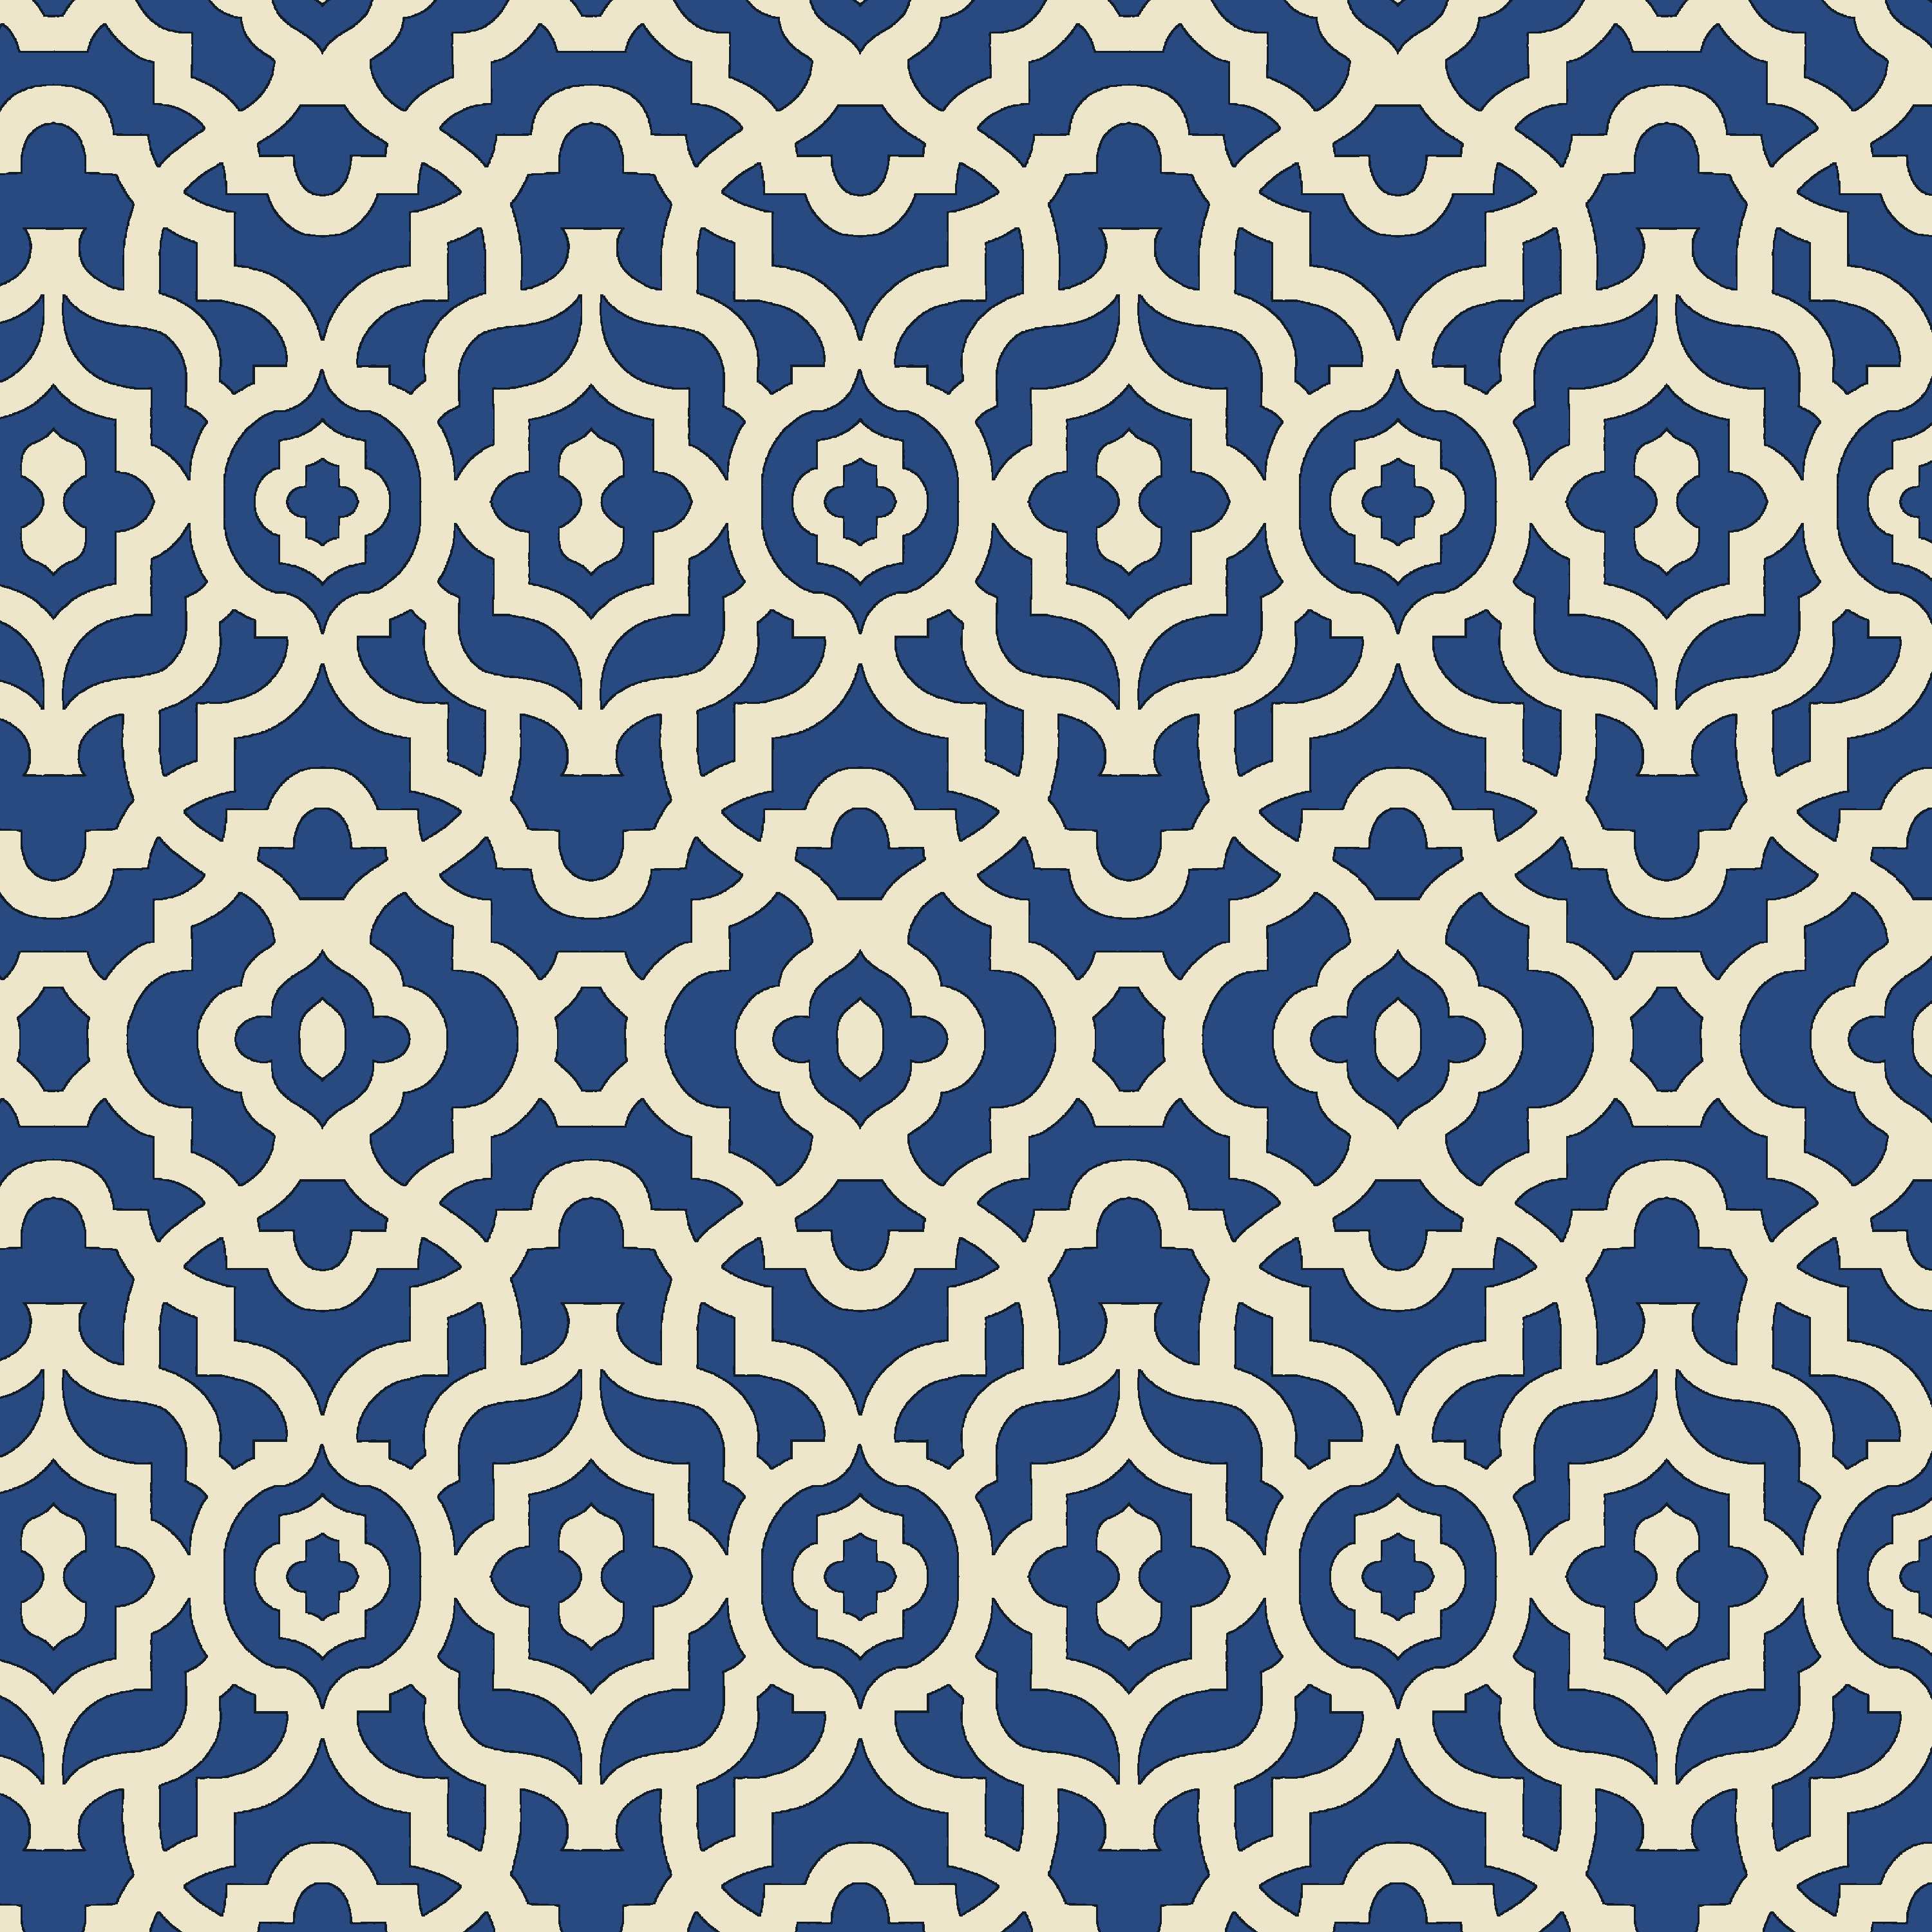 Waverly Inspirations Lattice Blue 100% Cotton Duck Fabric 45'' Wide, 180 Gsm, Quilt Crafts Cut By The Yard